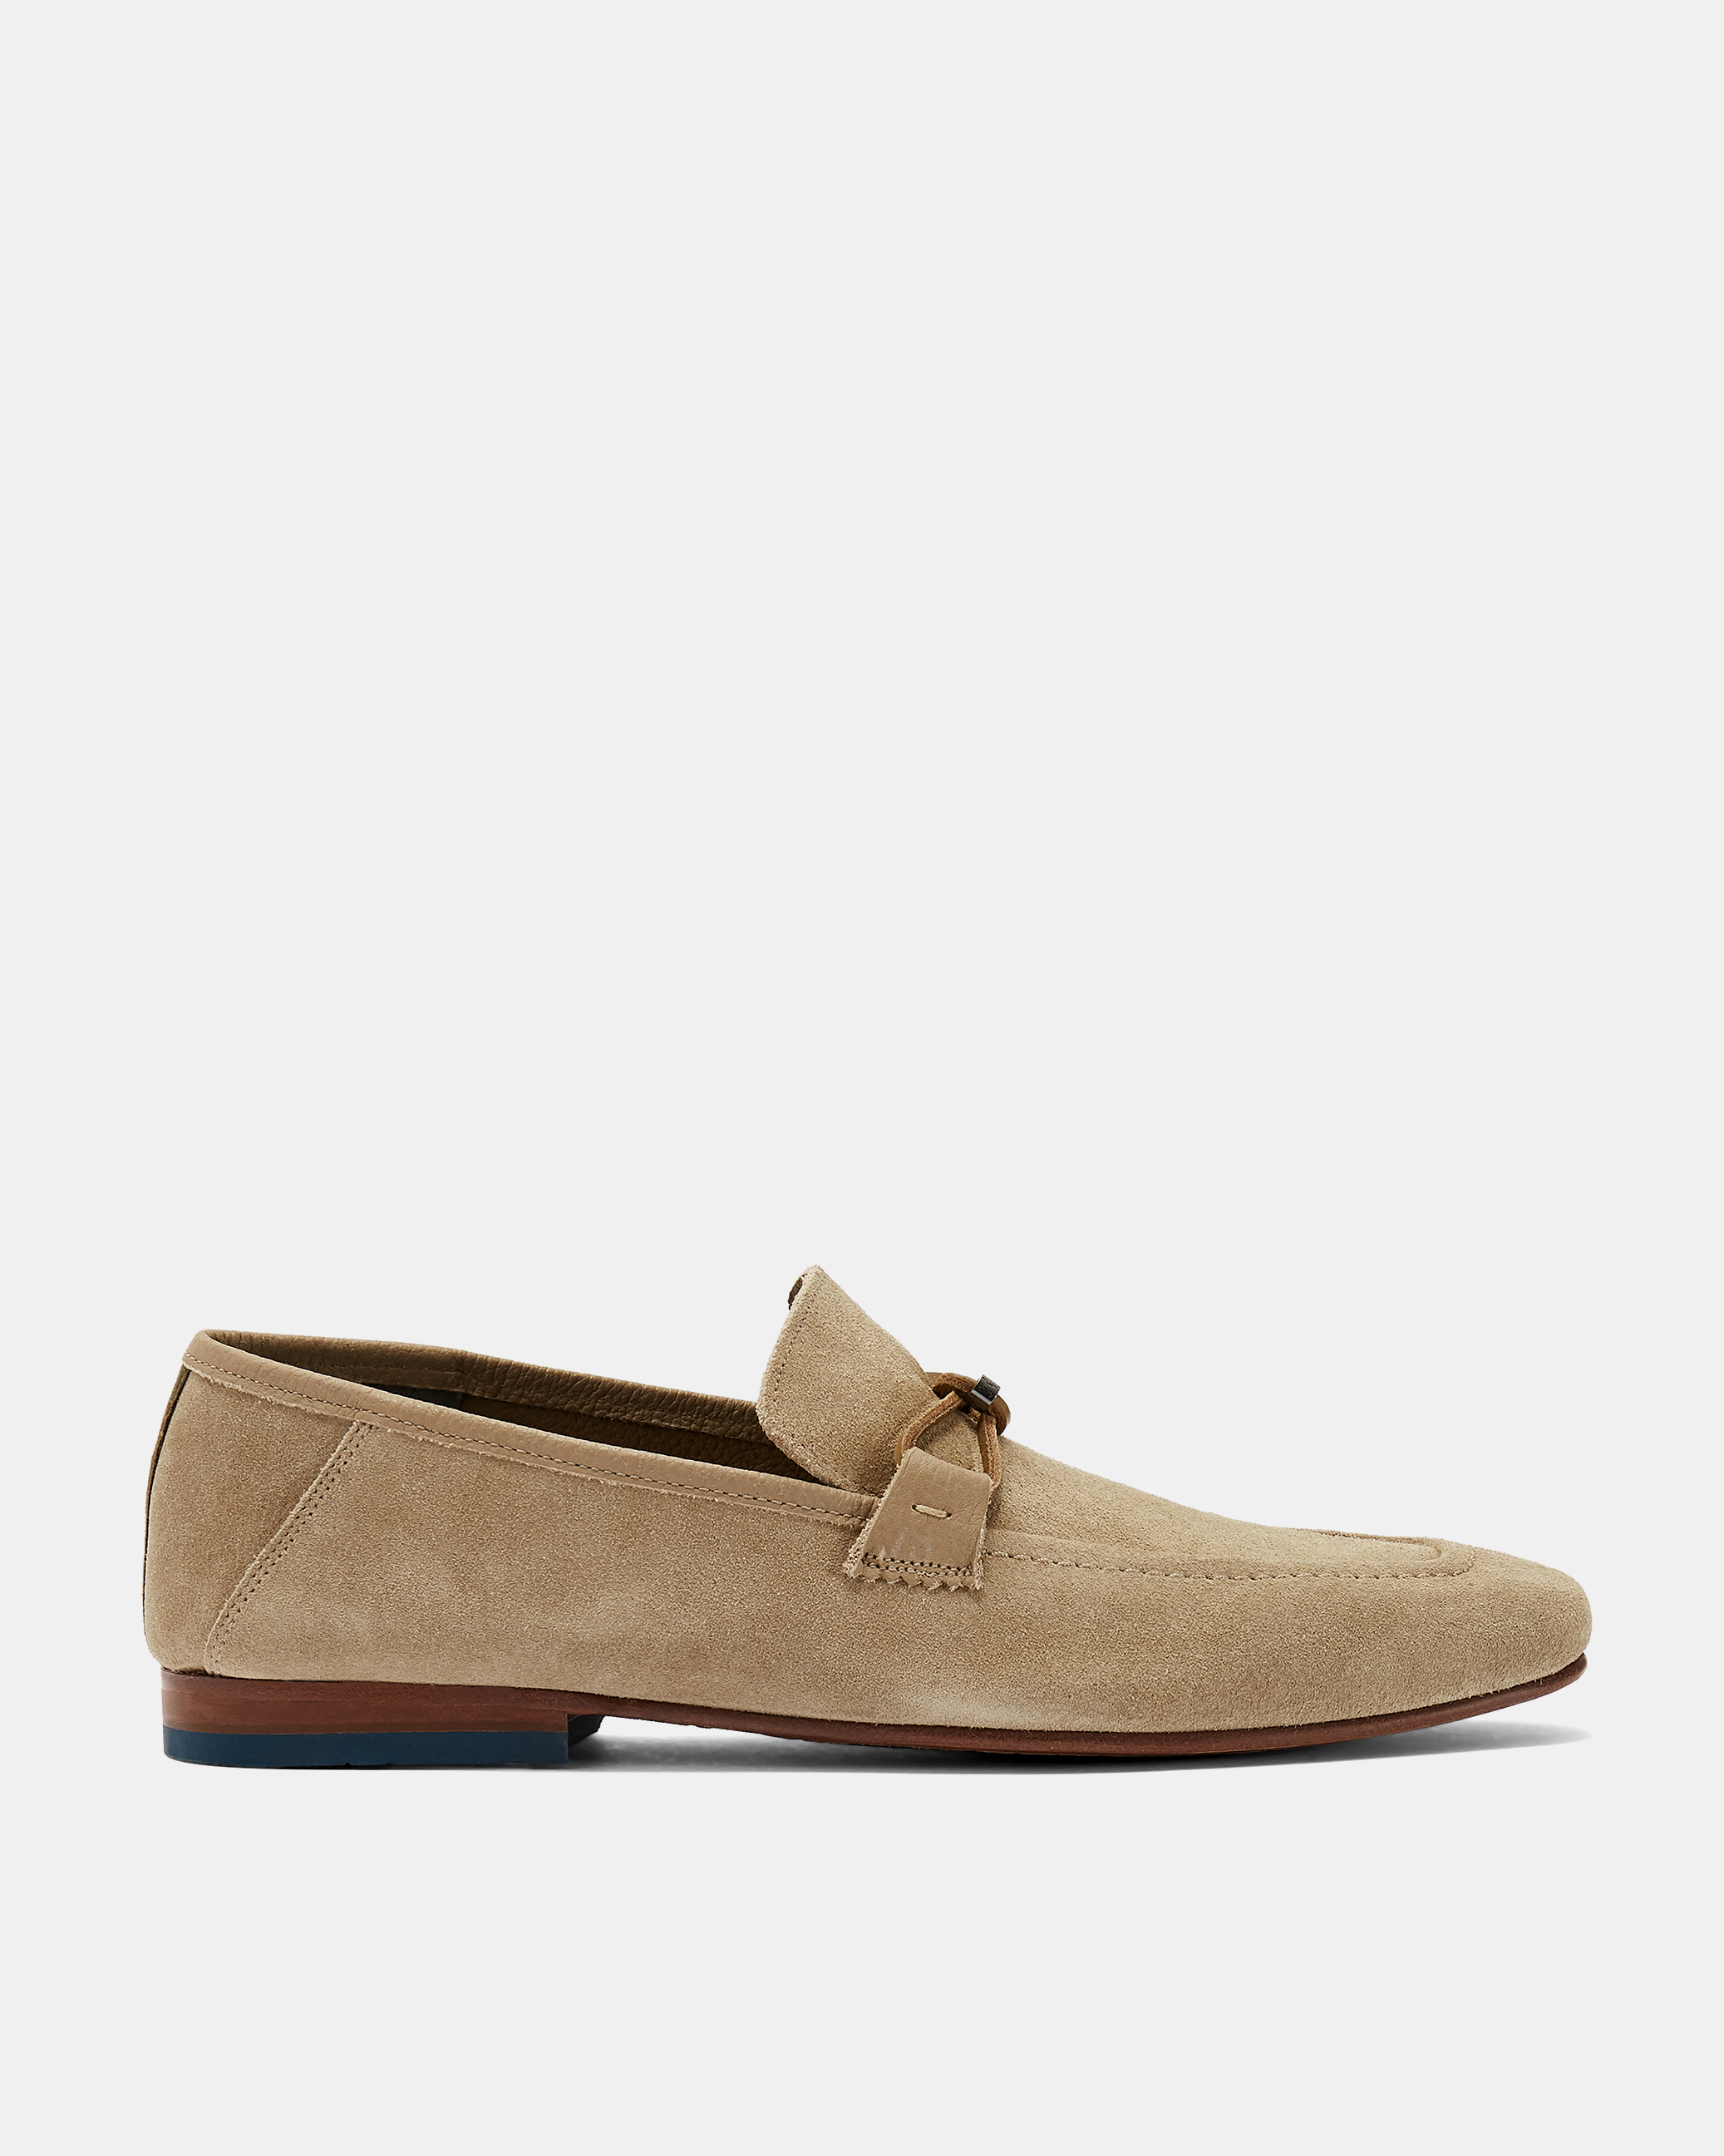 SIBLAC Deconstructed suede loafers by